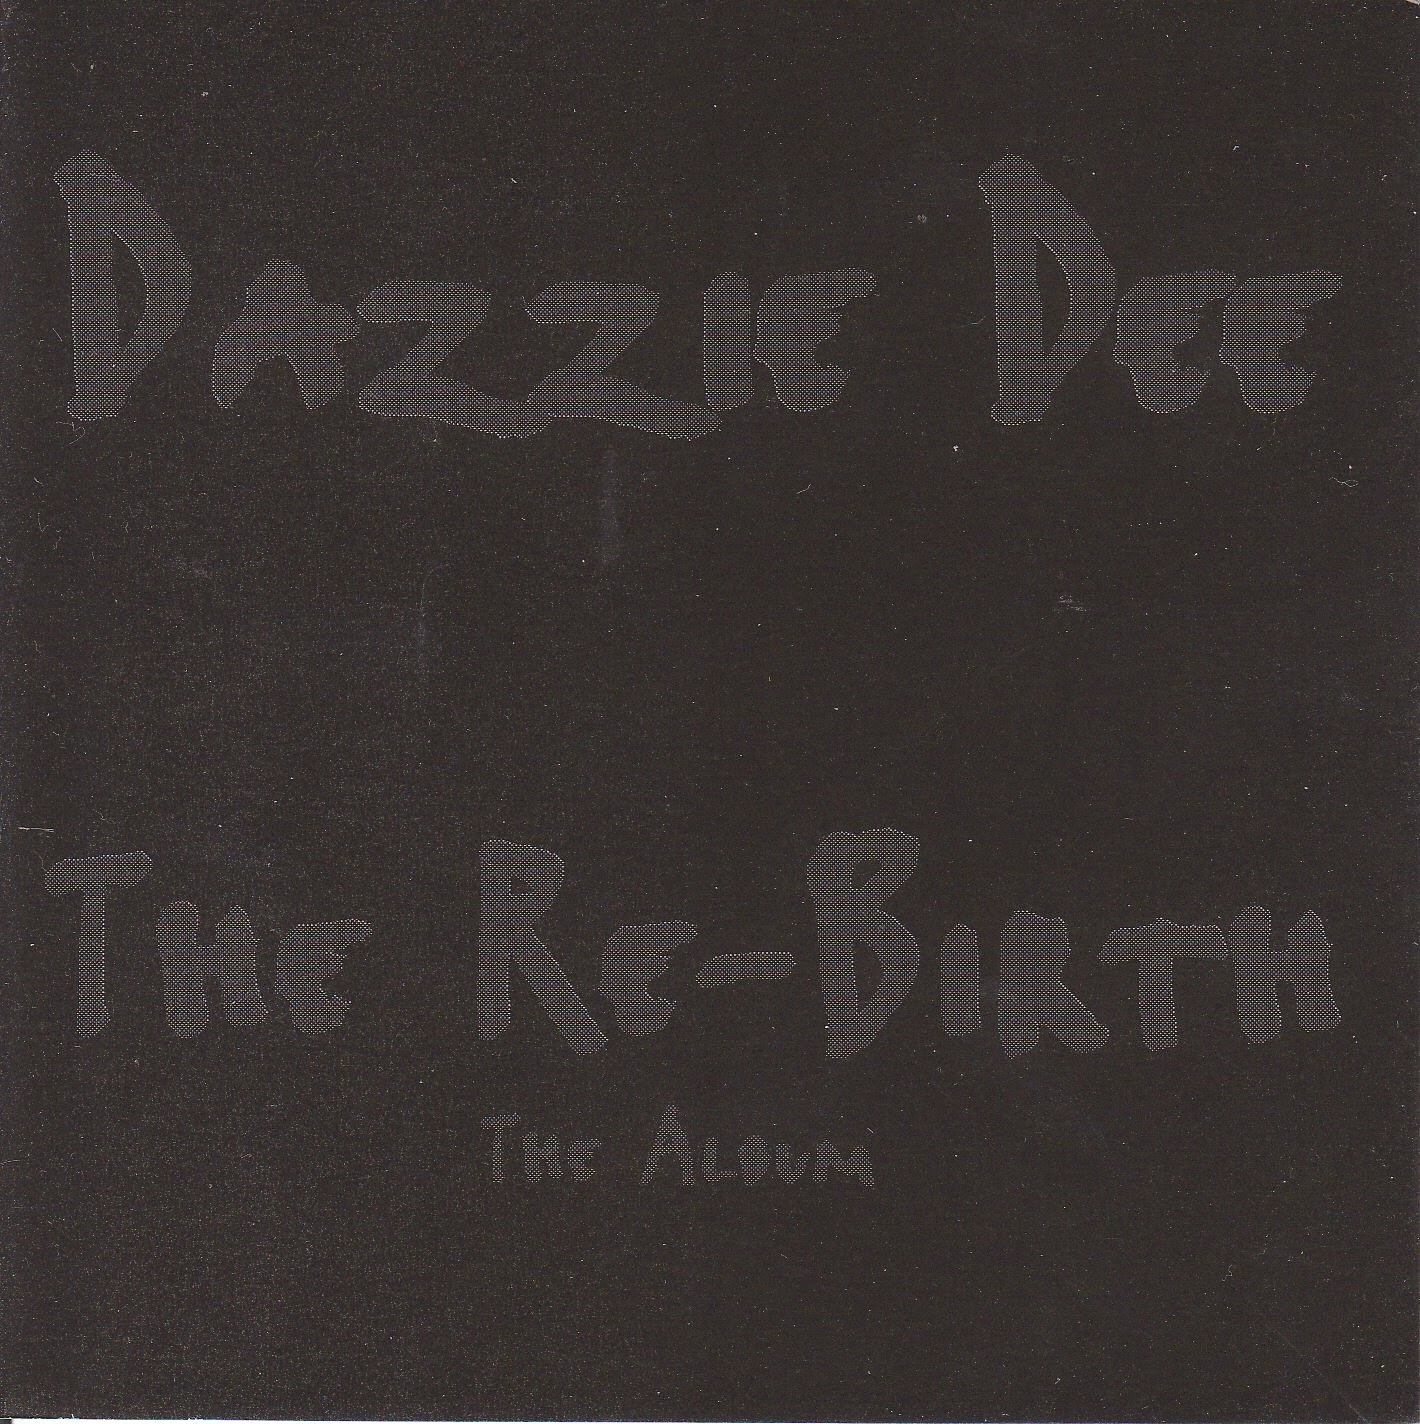 Dazzie Dee - The Re-Birth 1996